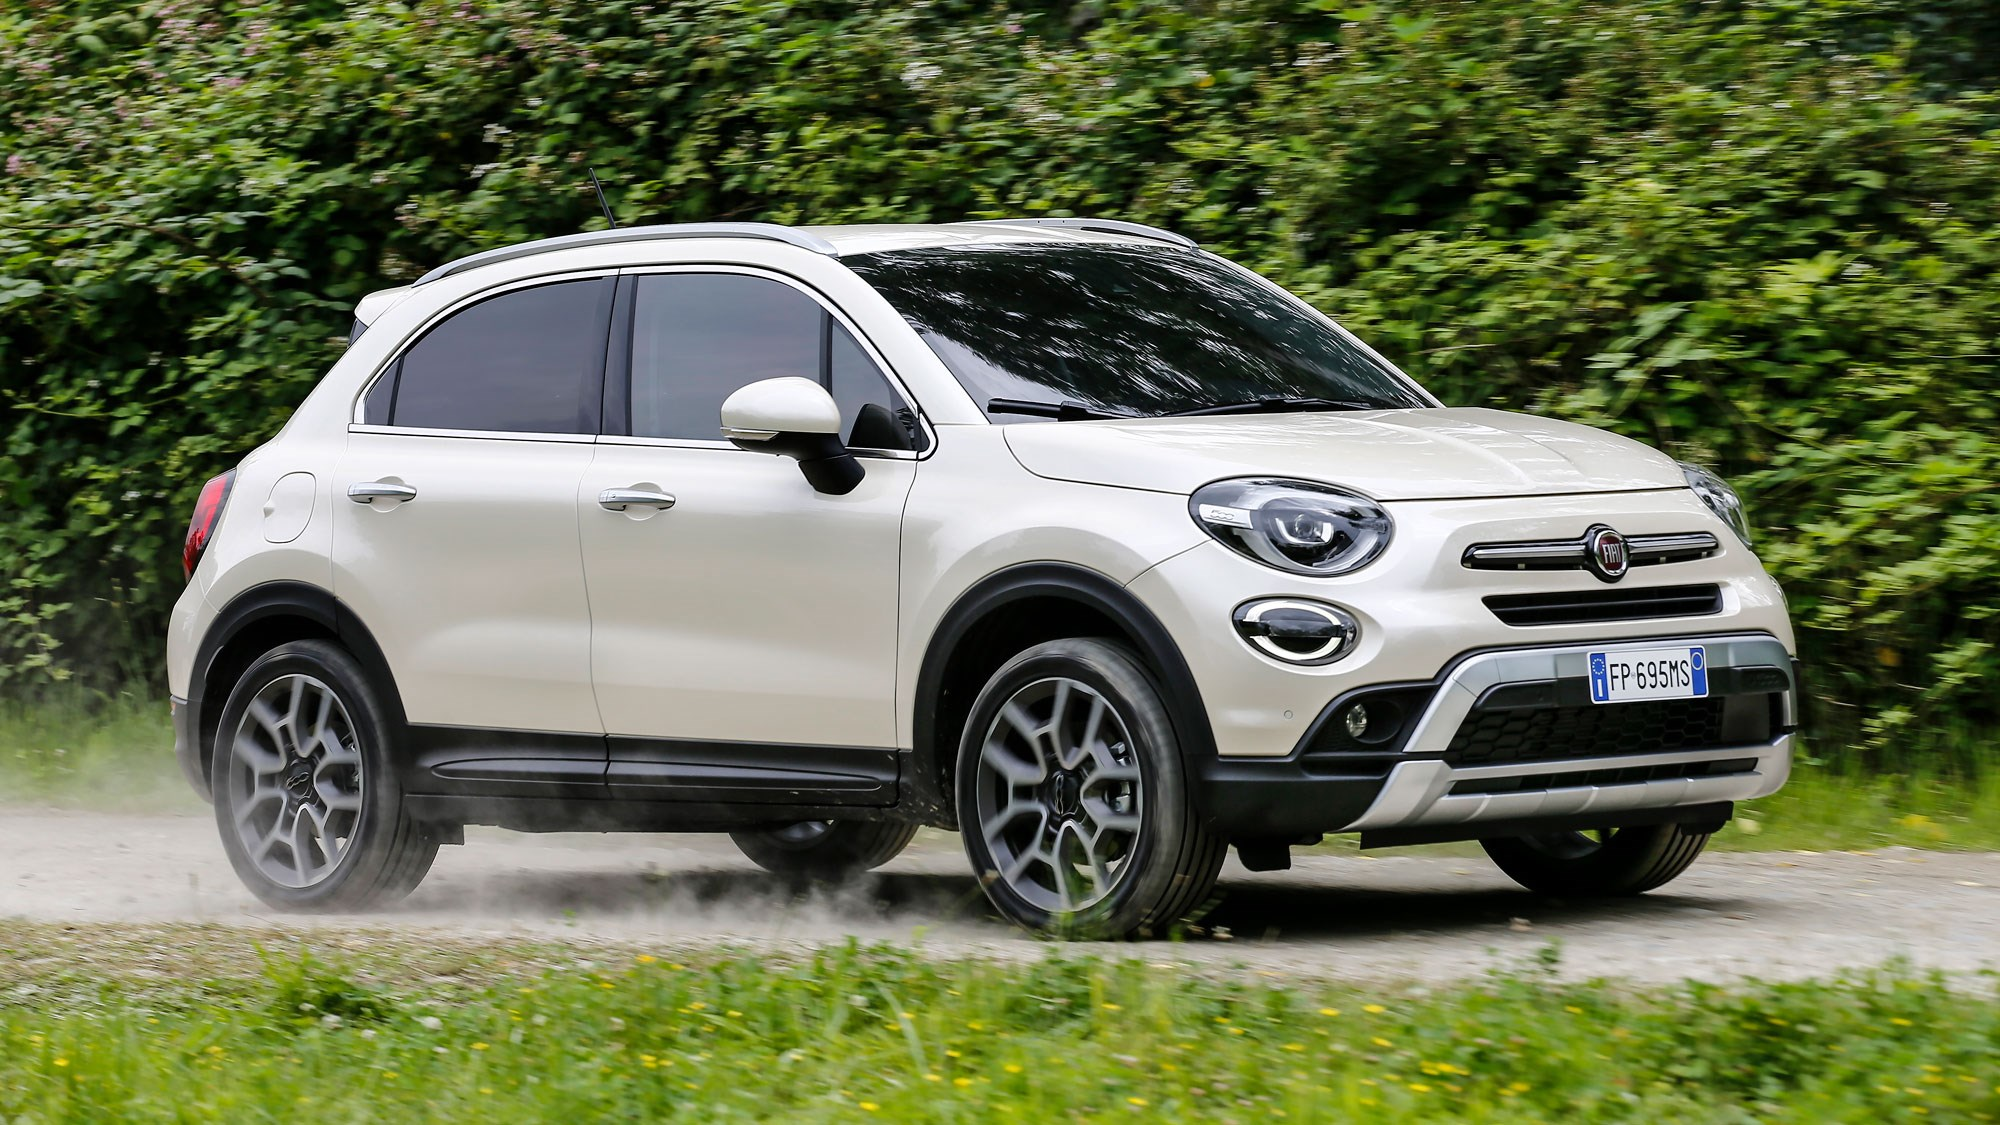 new fiat 500x review the crossover gets a facelift car magazine. Black Bedroom Furniture Sets. Home Design Ideas